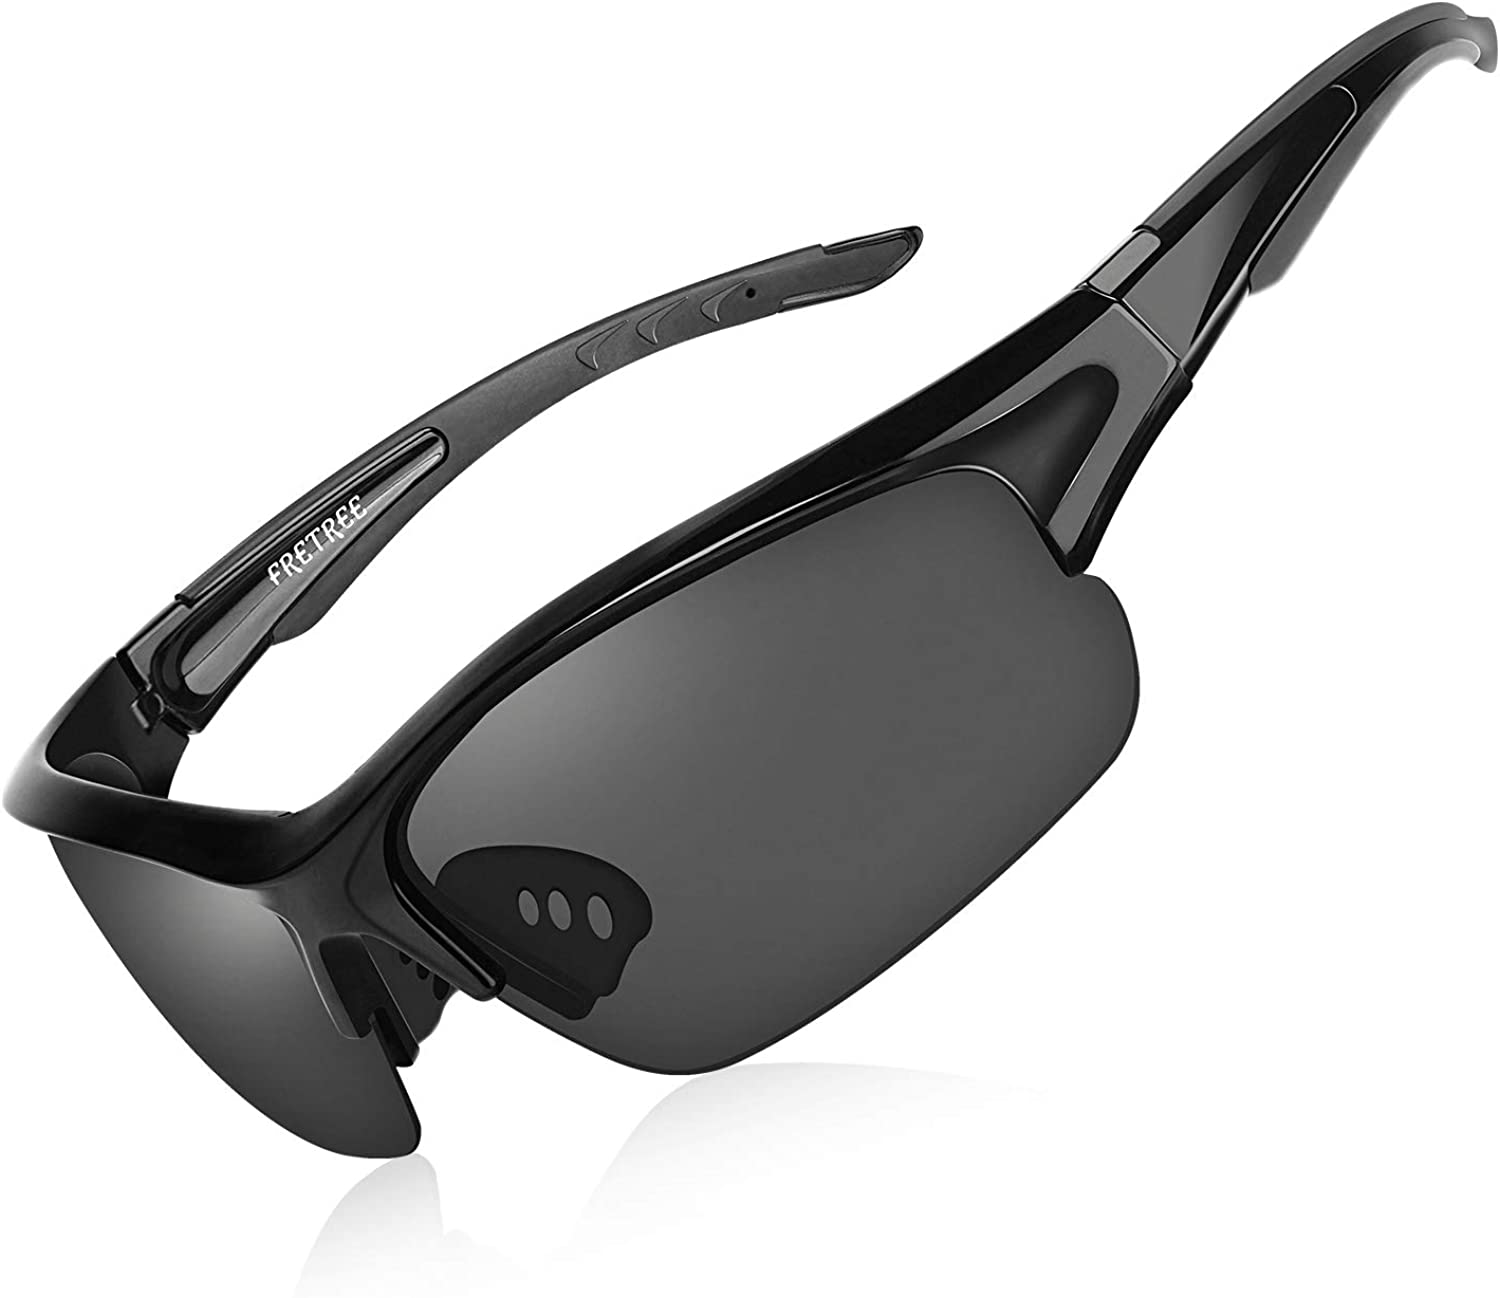 Amazon.com: Polarized Sunglasses for Men Women - UV Protection TR90  Unbreakable Sports Sunglasses for Fishing Driving Cycling: Clothing